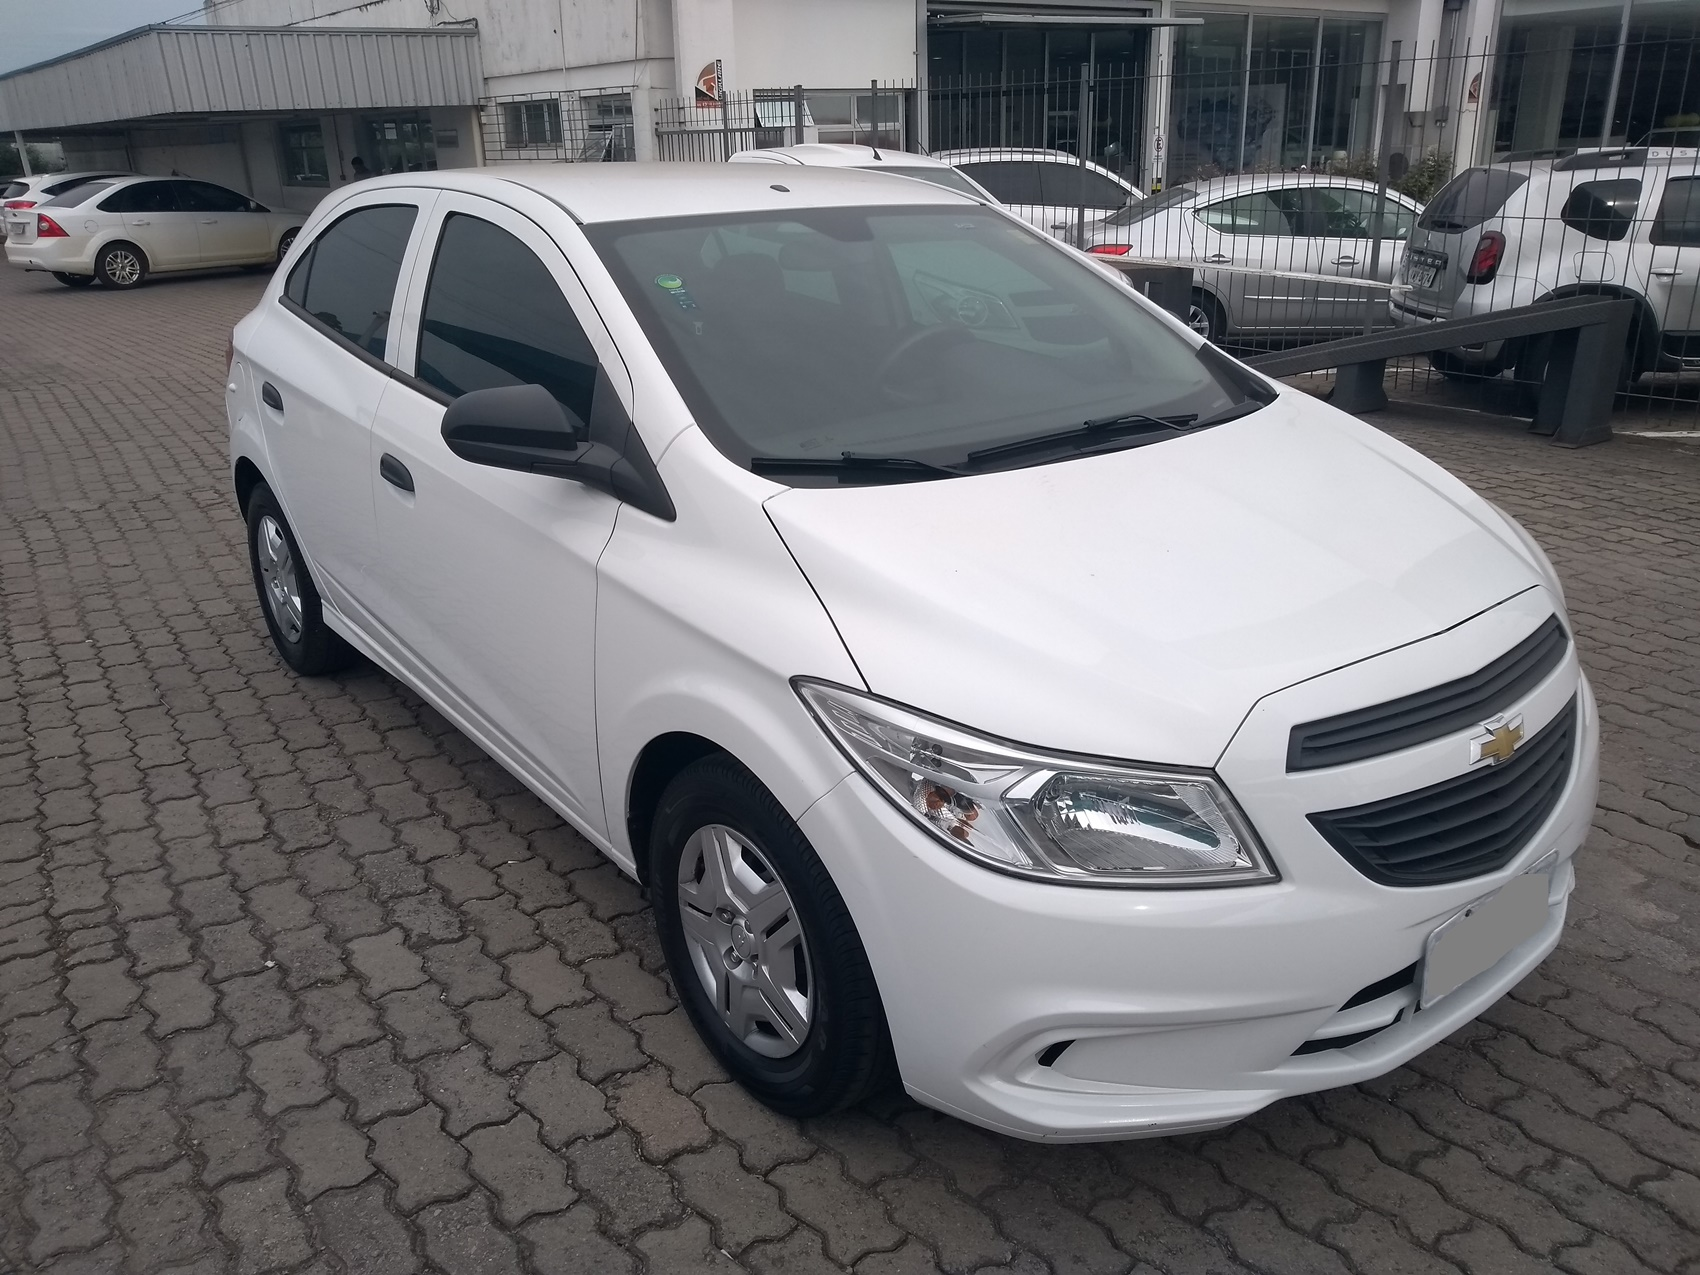 CHEVROLET ONIX HATCH JOY . 1.0 2017